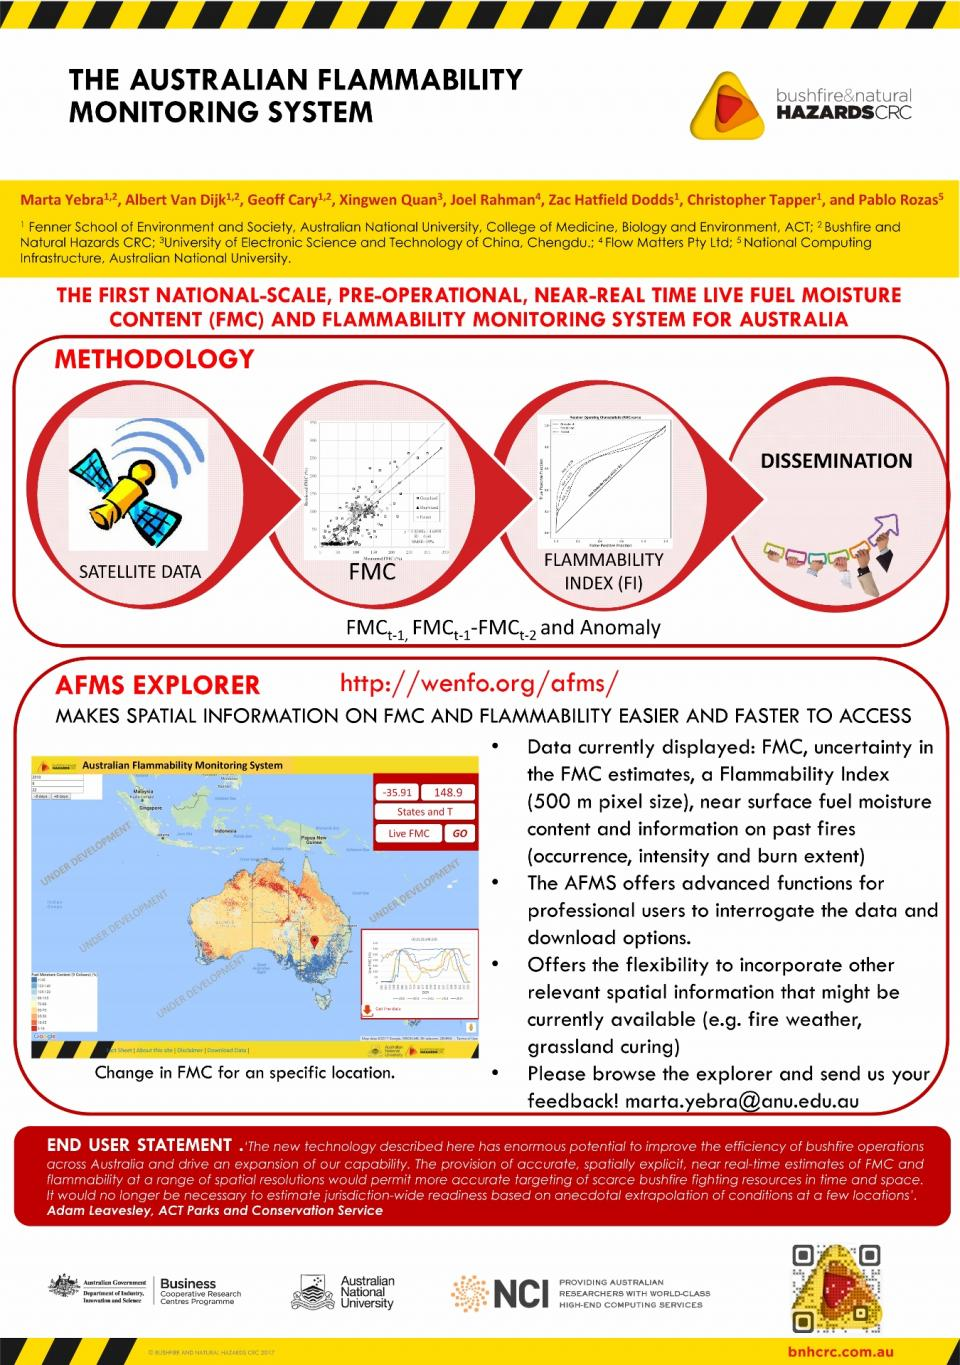 The Australian Flammability Monitoring System